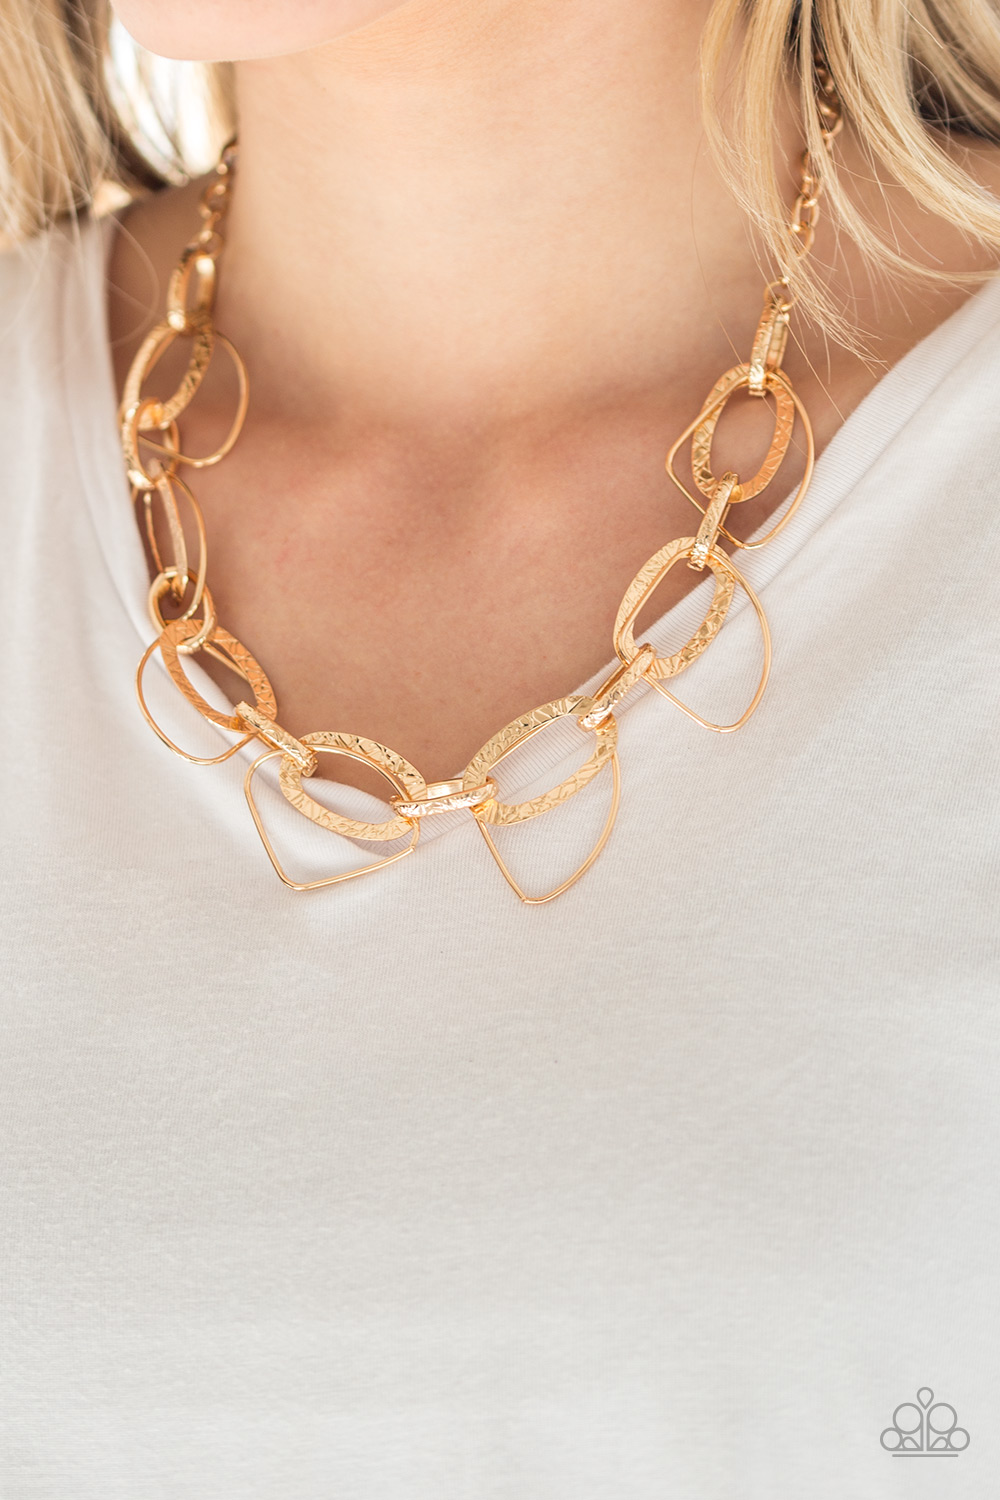 Very Avant-Garde - Gold Necklace by Paparzzi $5.00 www.my-bling.com